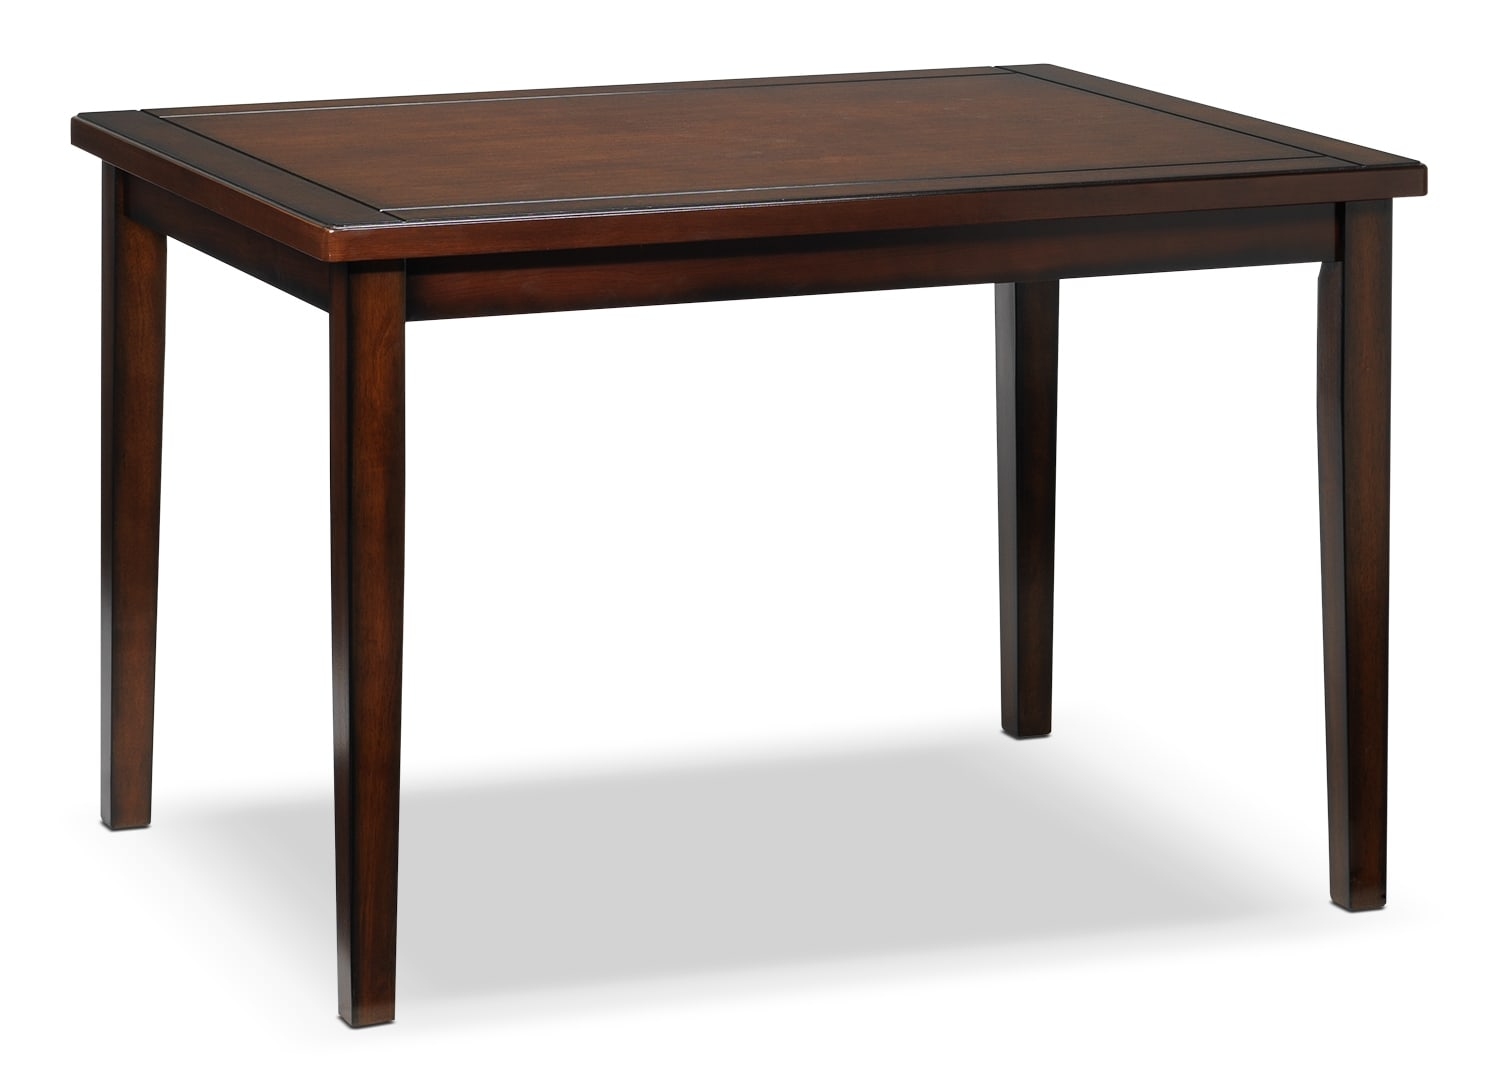 Casual Dining Room Furniture - Boyd Table - Dark Brown Cherry